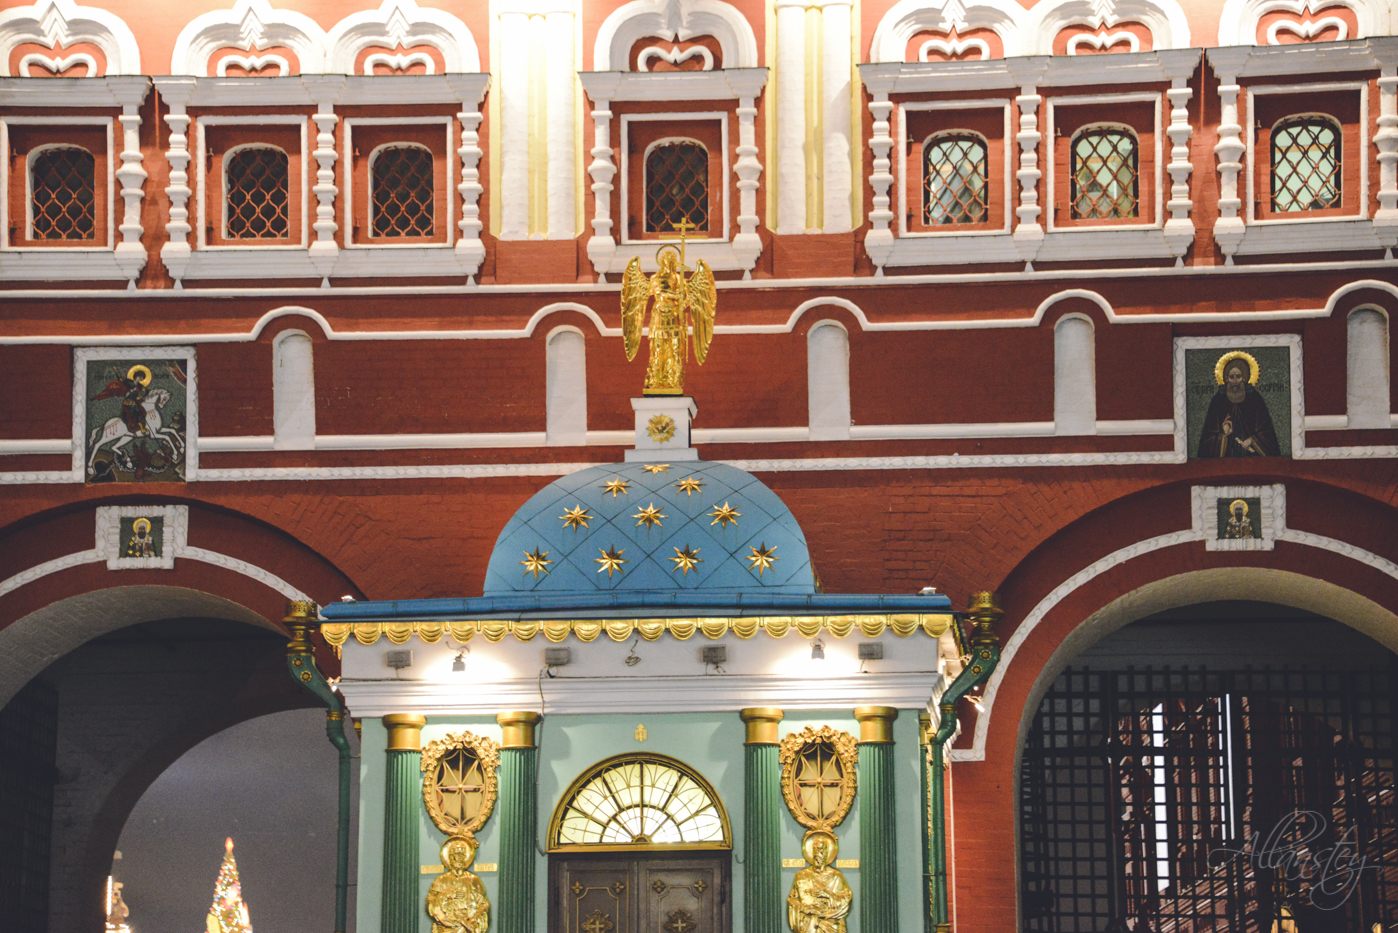 Resurrection Gate or Iberian Gate in Moscow, Russia. It connects the north-western end of Red Square with Manege Square.